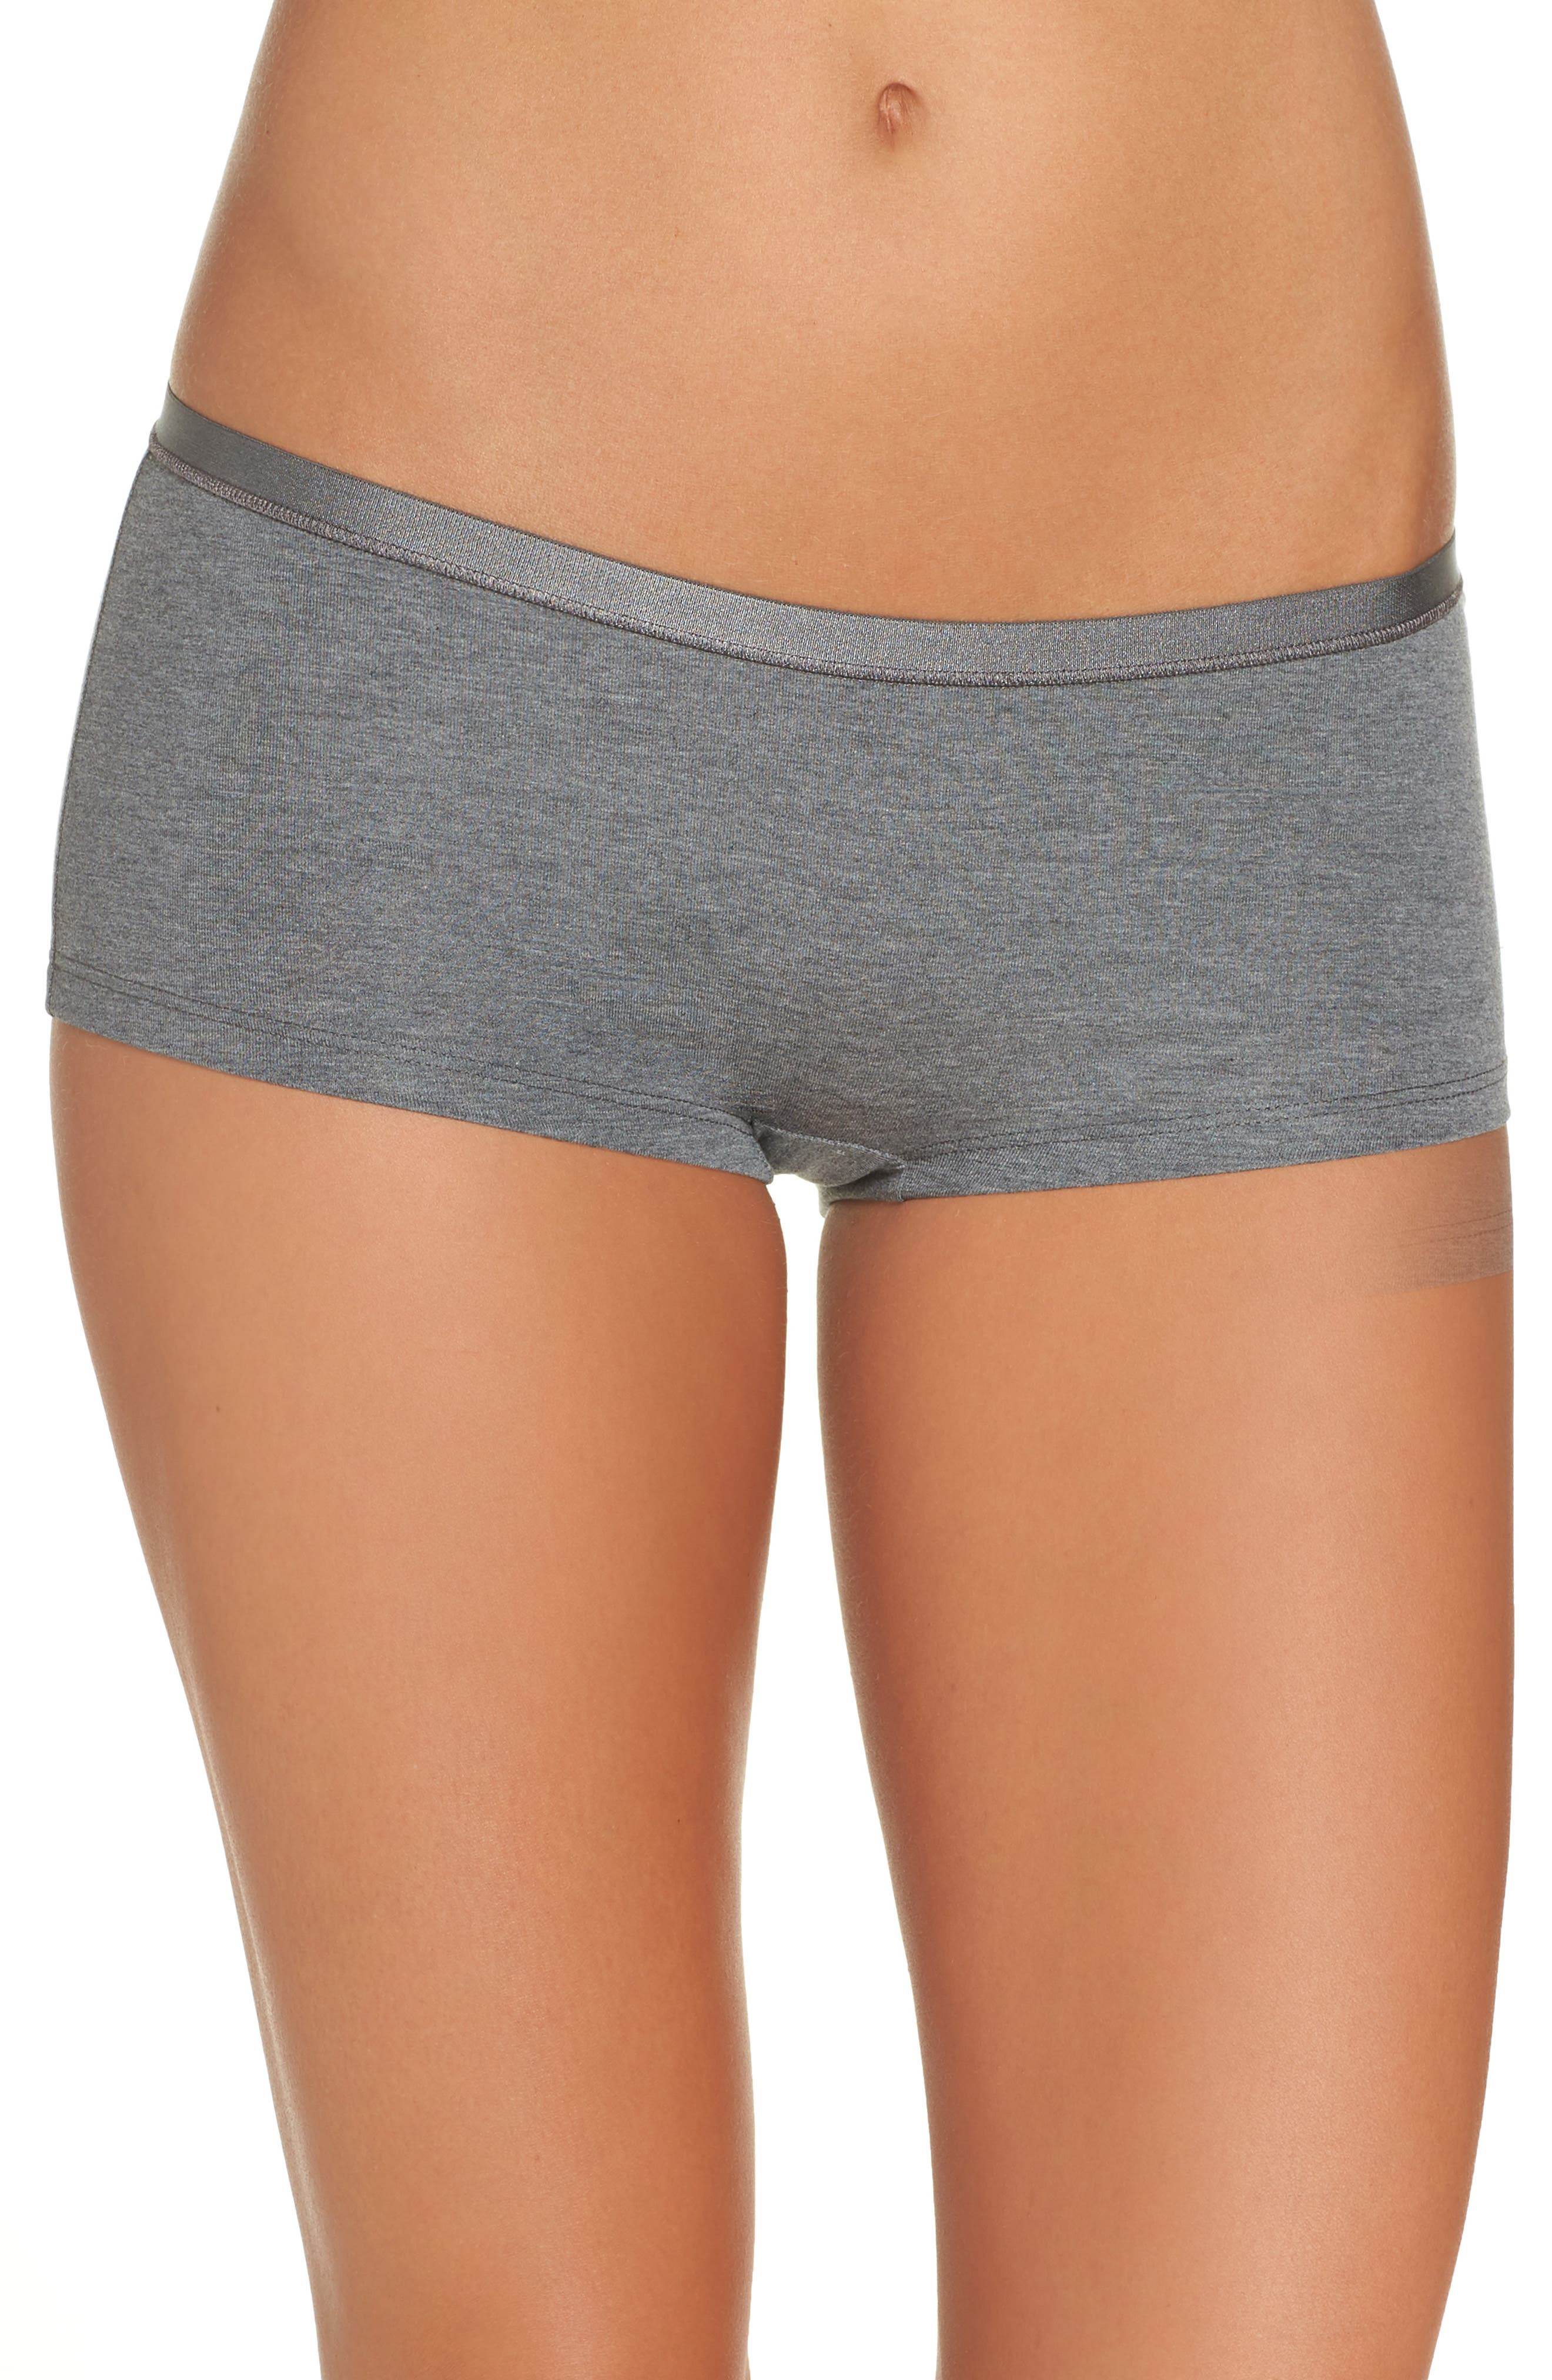 Soft Touch Stretch Modal Boyshorts,                             Main thumbnail 1, color,                             SOFT TOUCH MELANGE